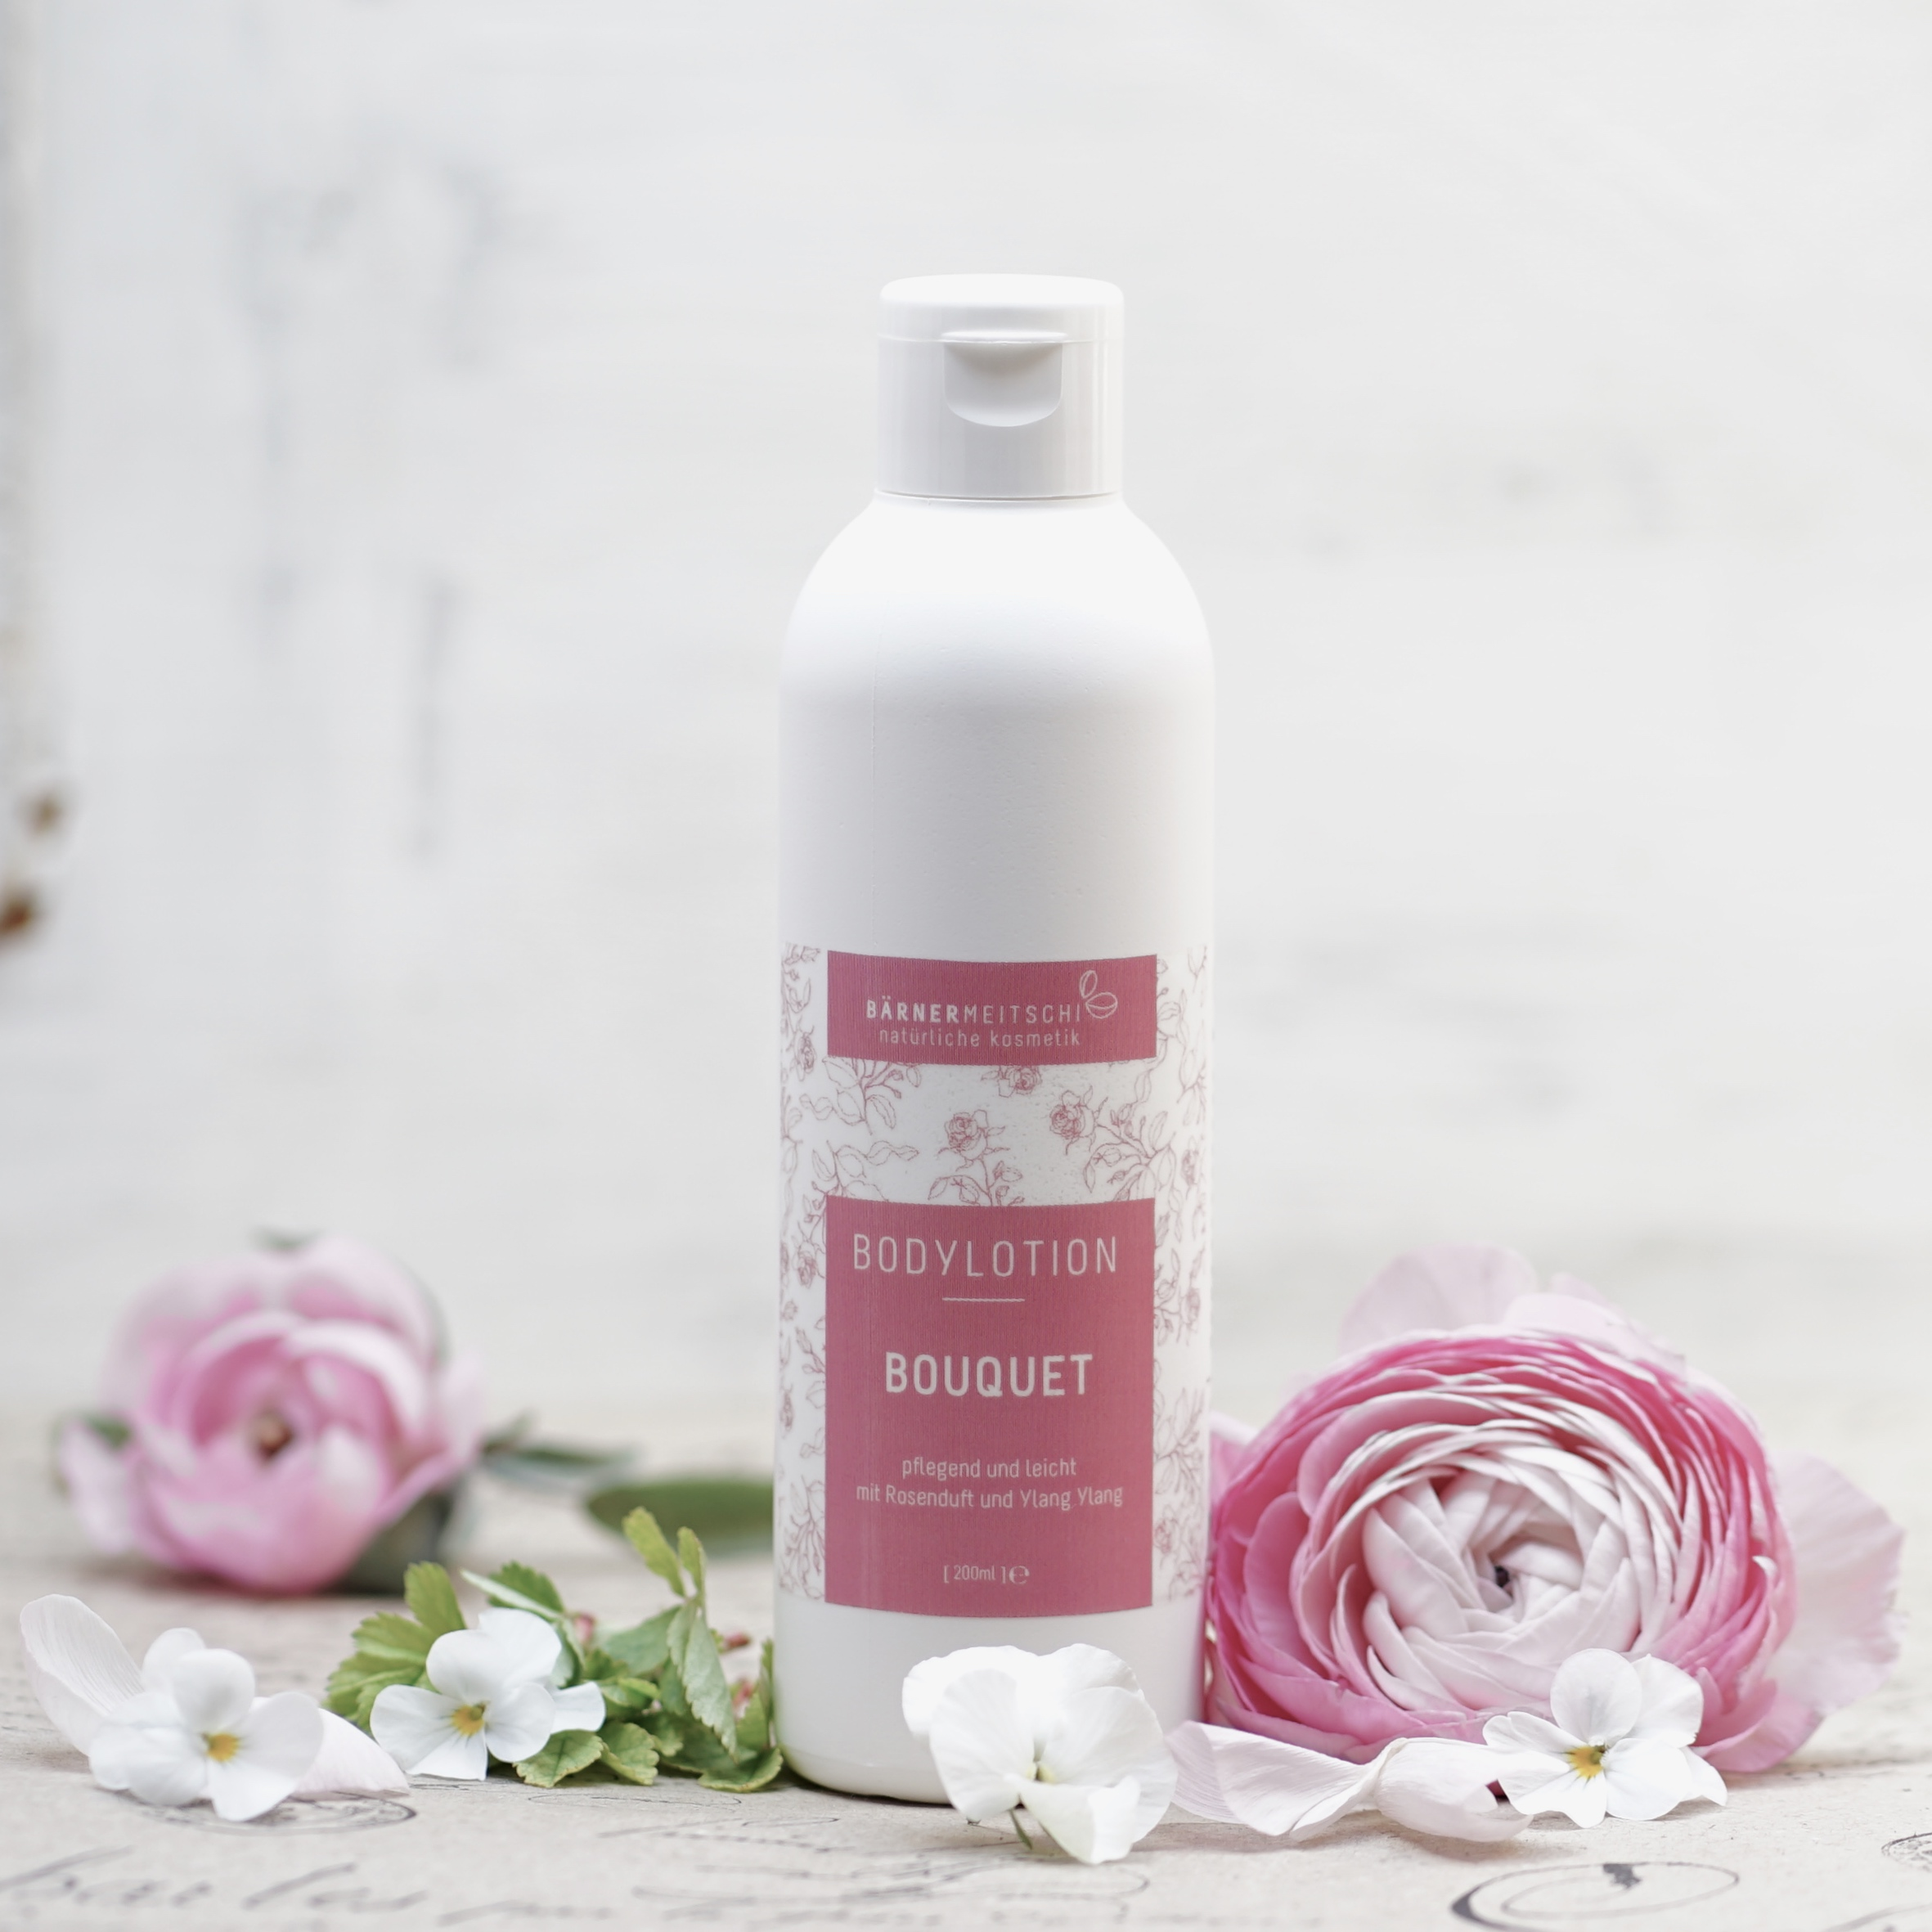 4 Bodylotion Bouquet